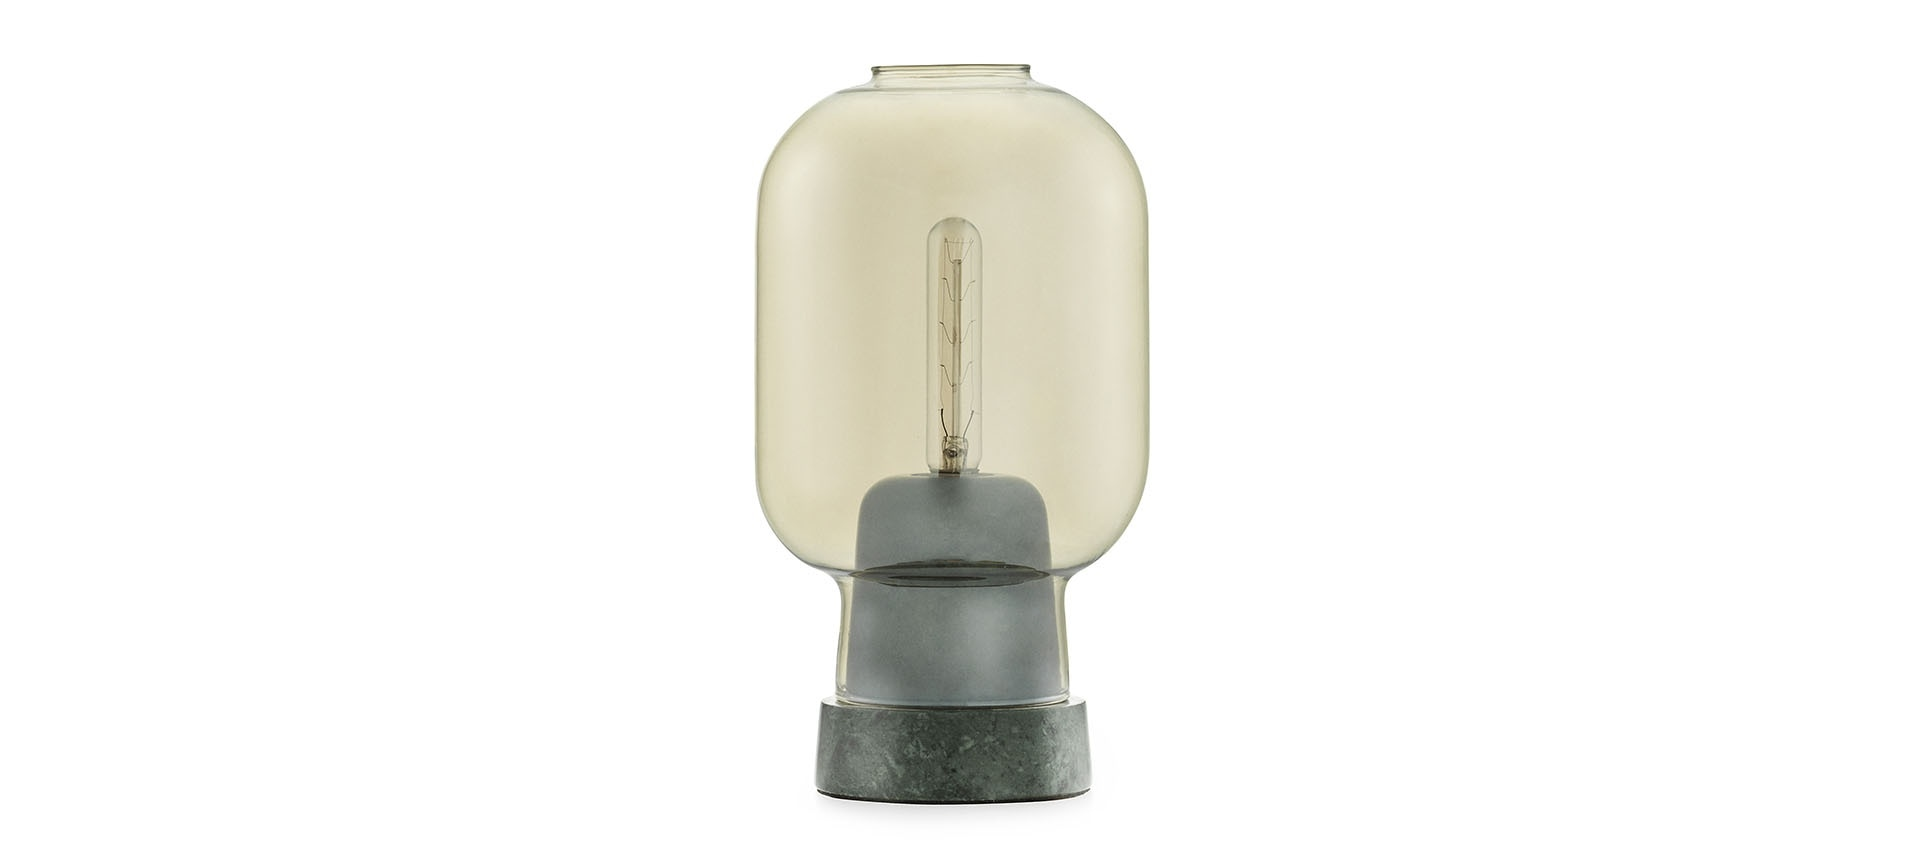 Lampe de table amp normann copenhagen blou paris - Normann copenhagen paris ...